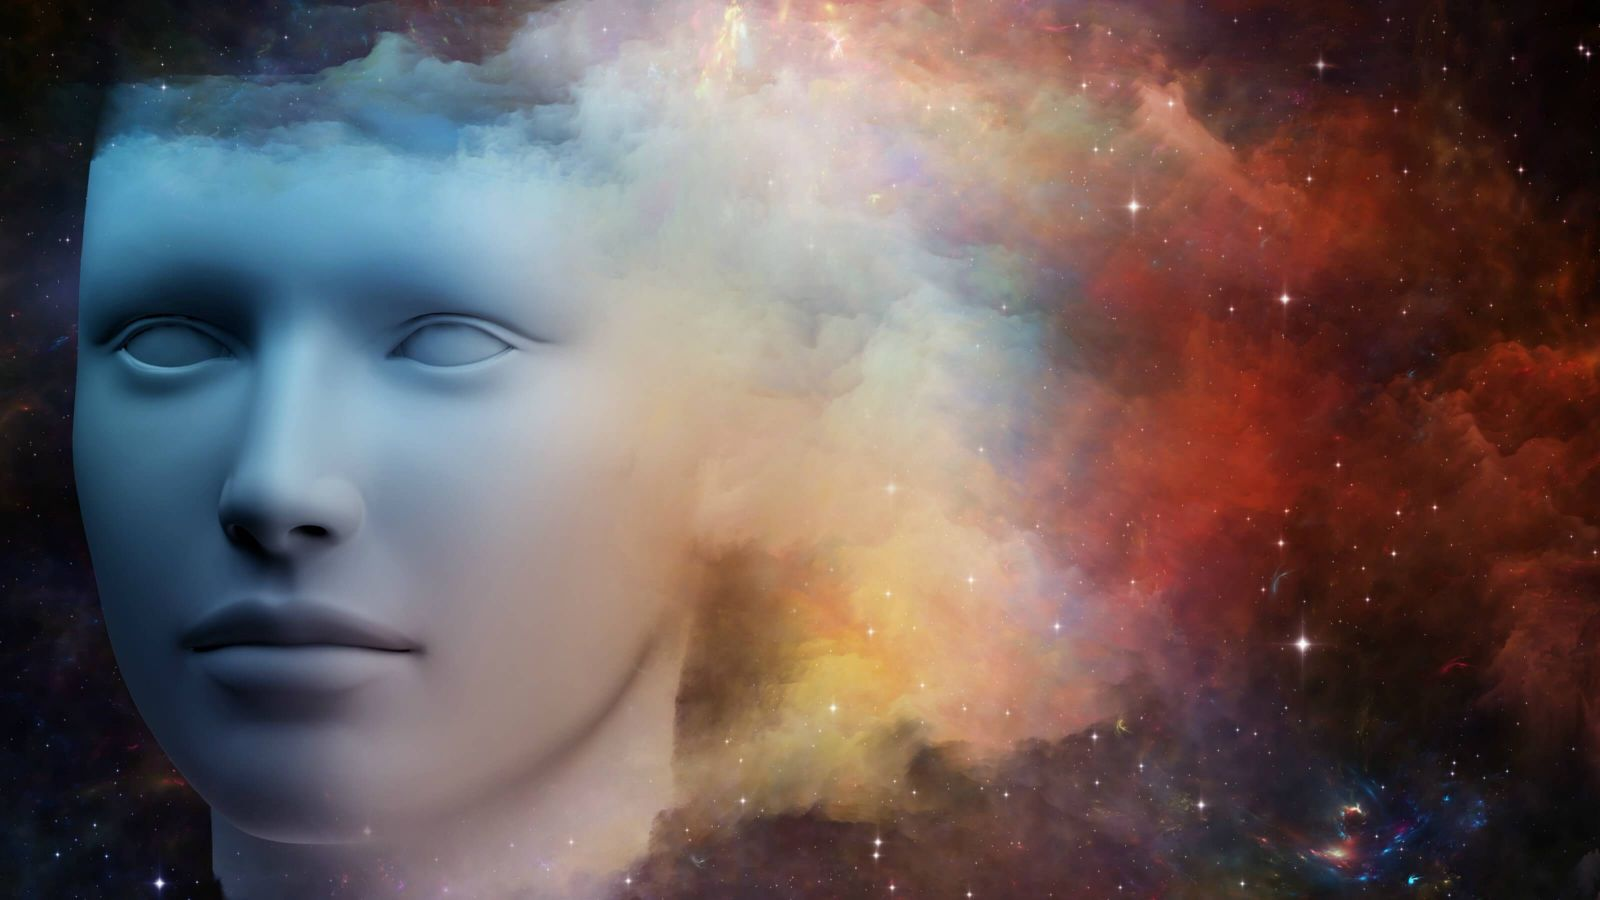 An abstract image of a human head in outer space that fades into a cloud.